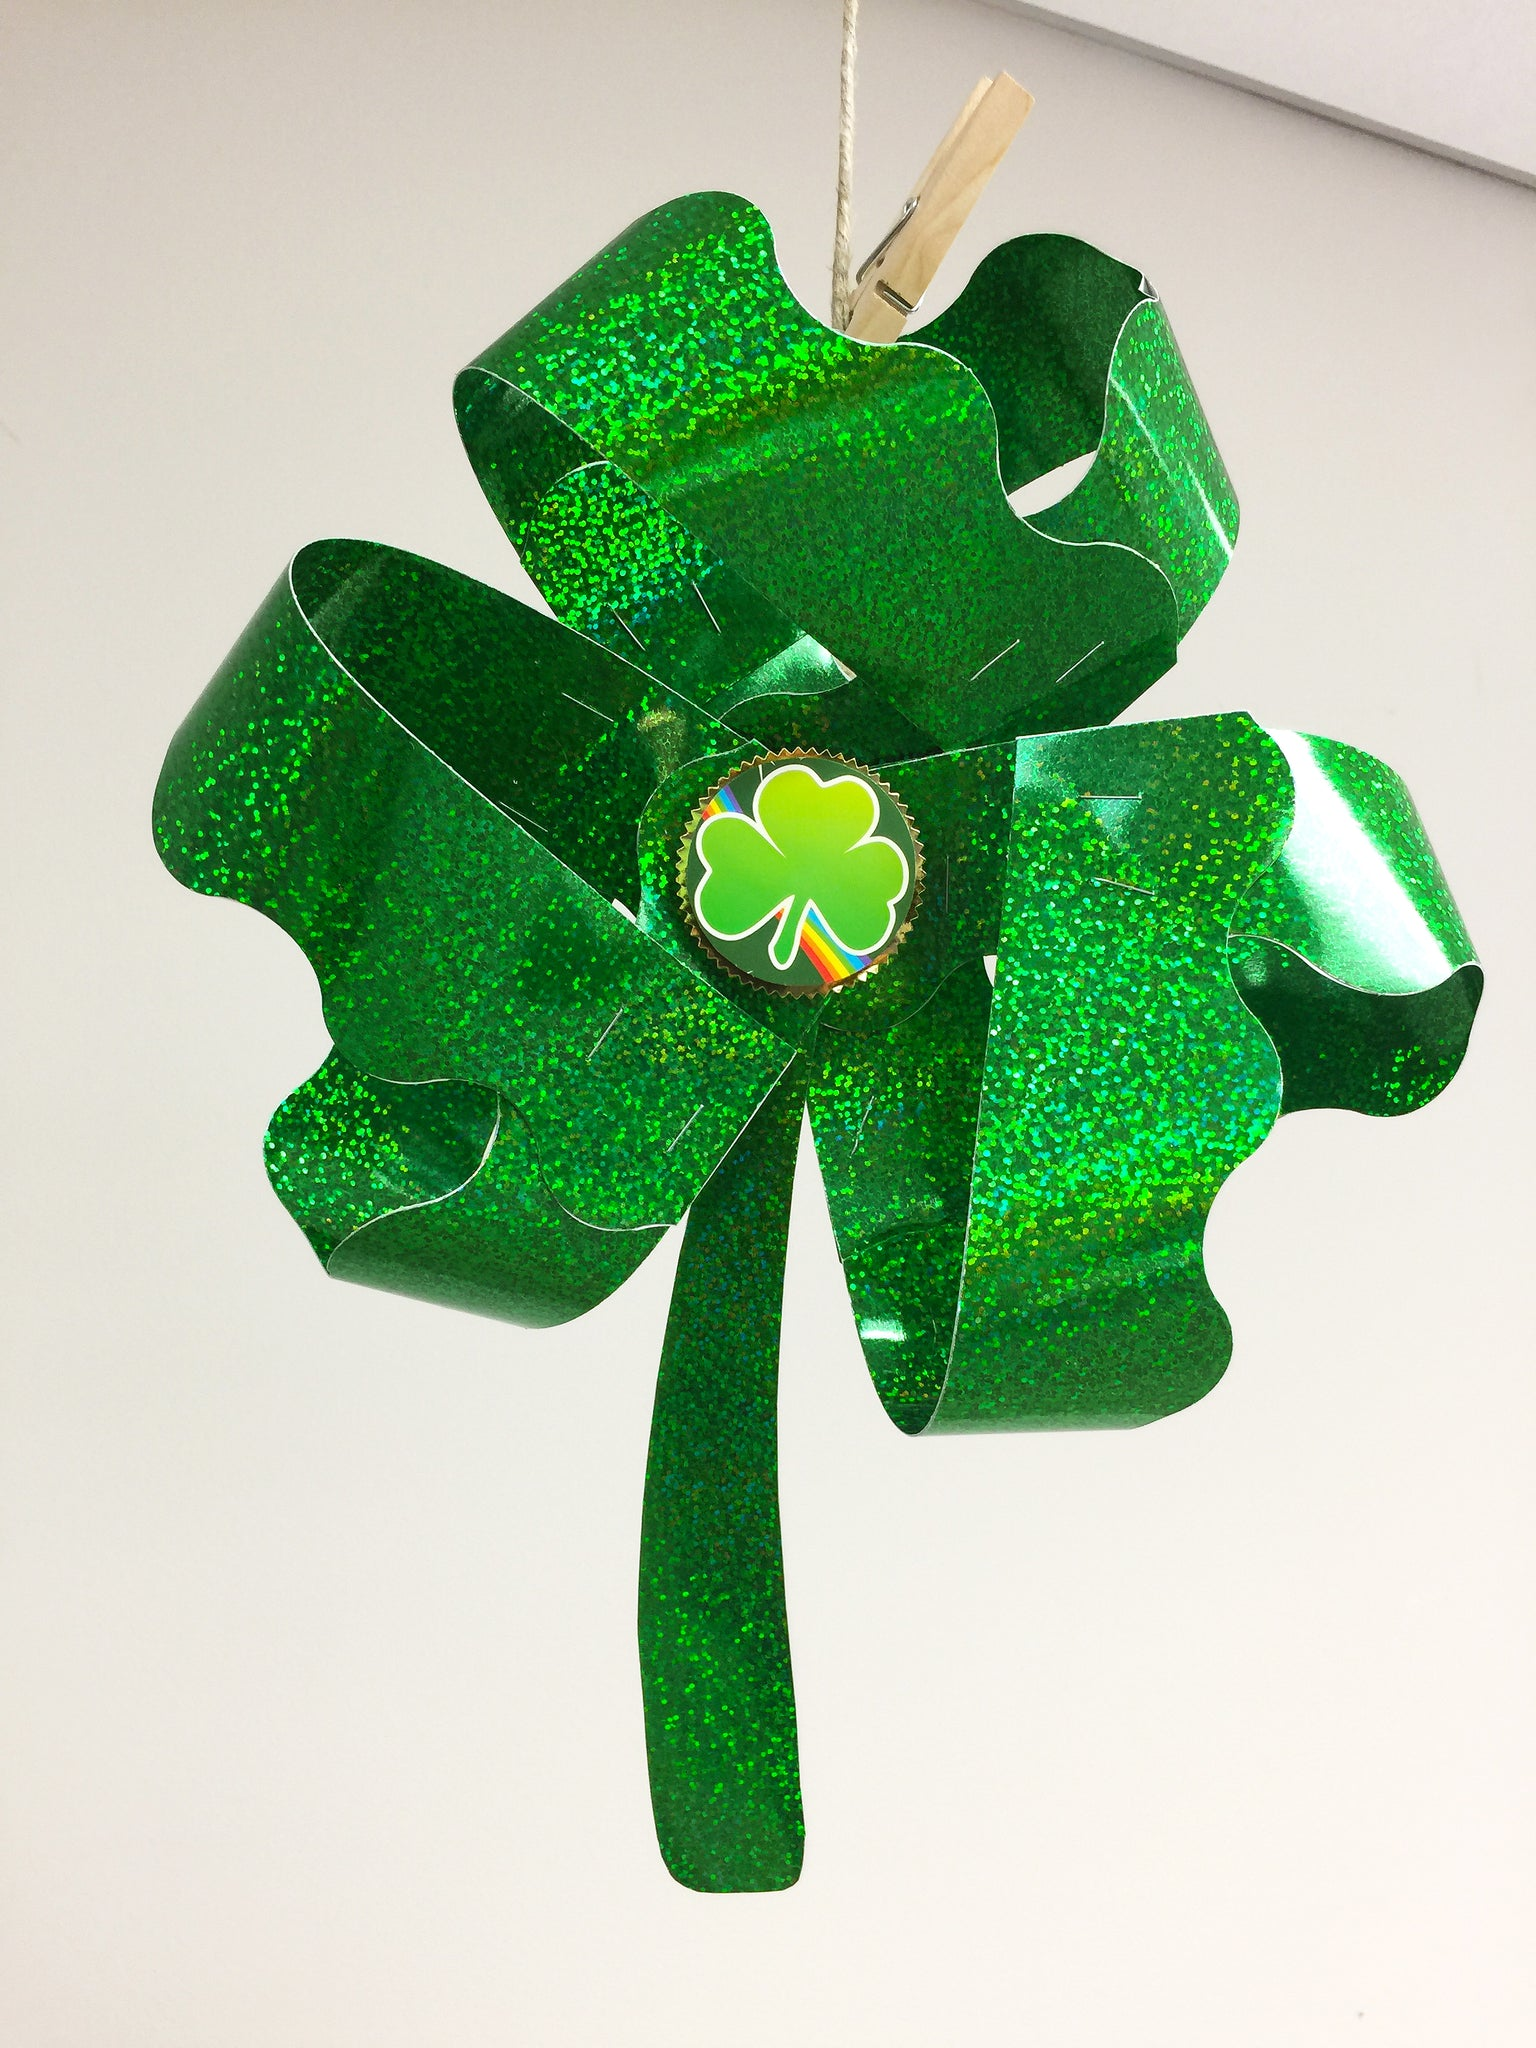 DIY paper shamrock project st. patrick's day party decoration